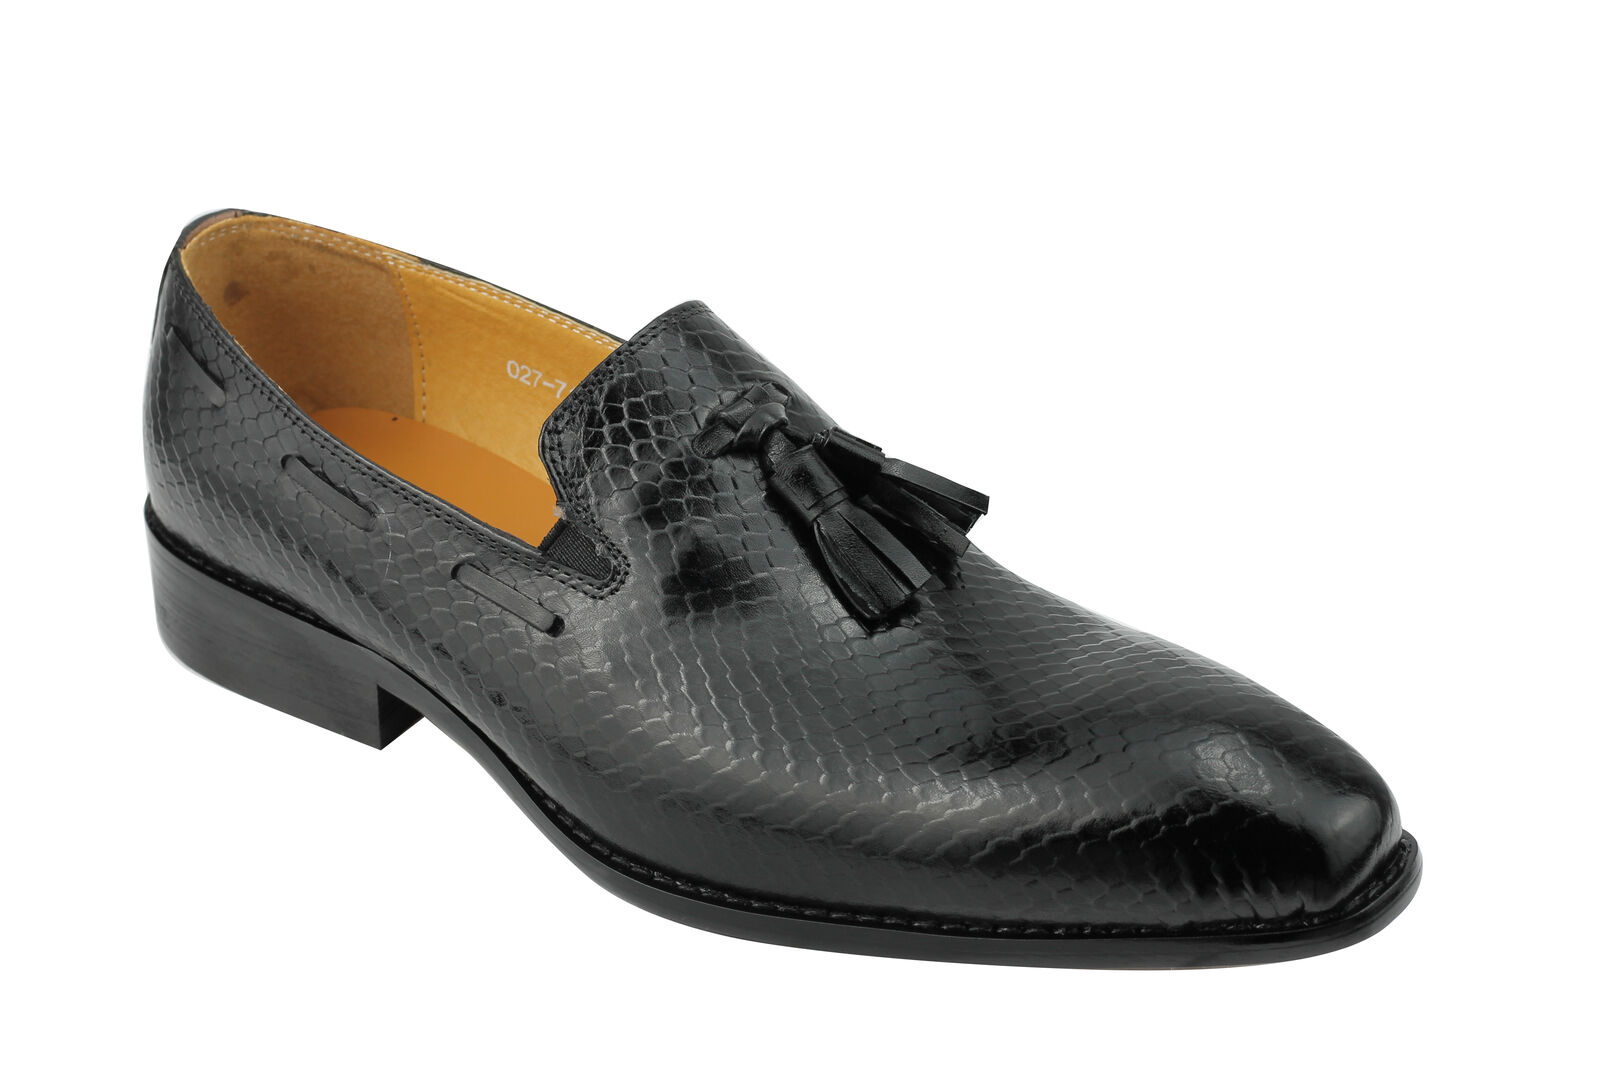 Mens Real Leather Black Classic Snakeskin Tassel Smart Party Wedding Shoes